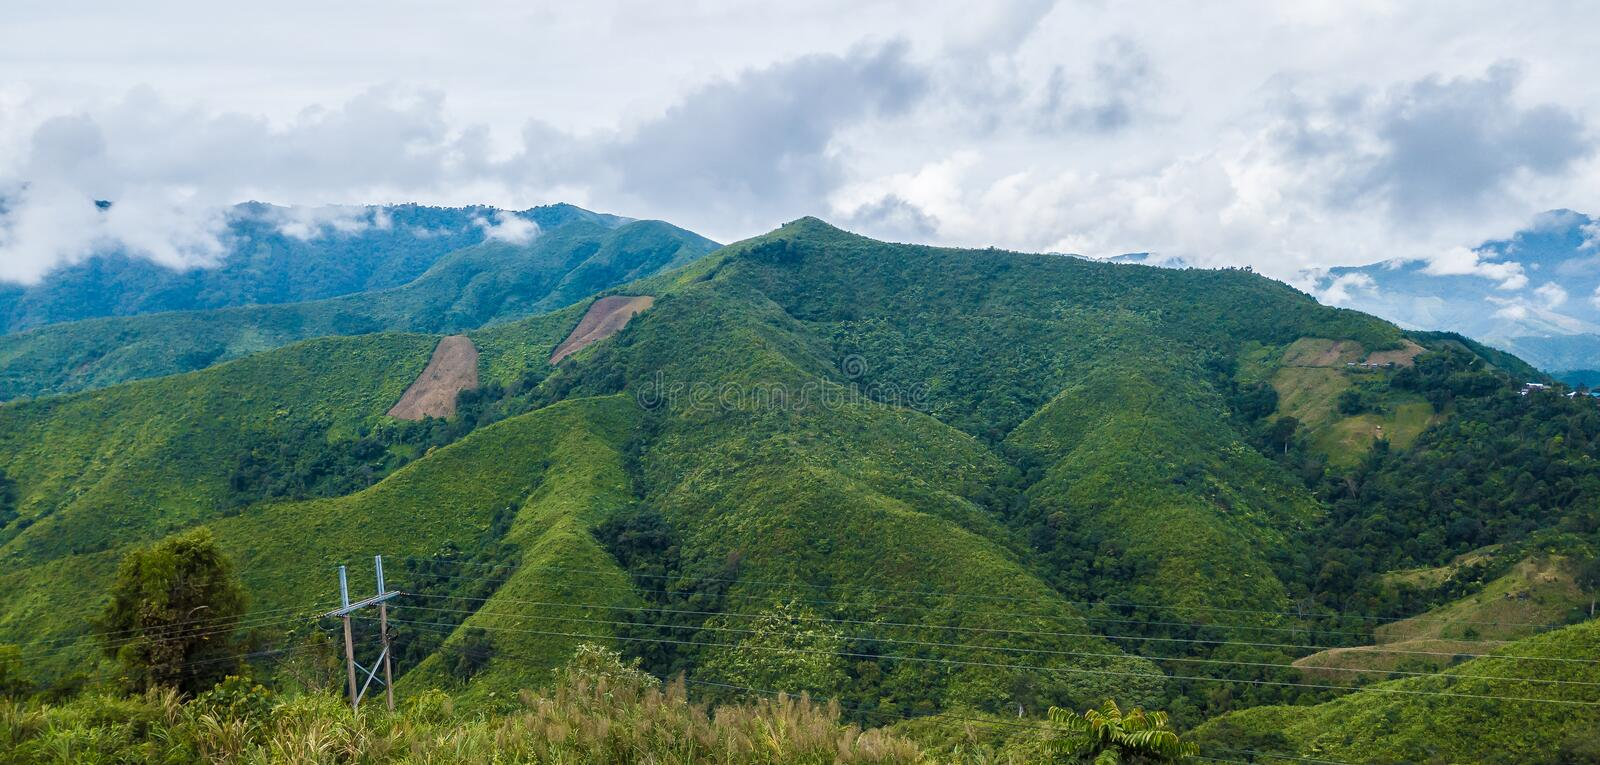 View of mountain range forest and Cloud, beautiful nature. At doi phu kha National Park, Nan Province, Thailand royalty free stock images